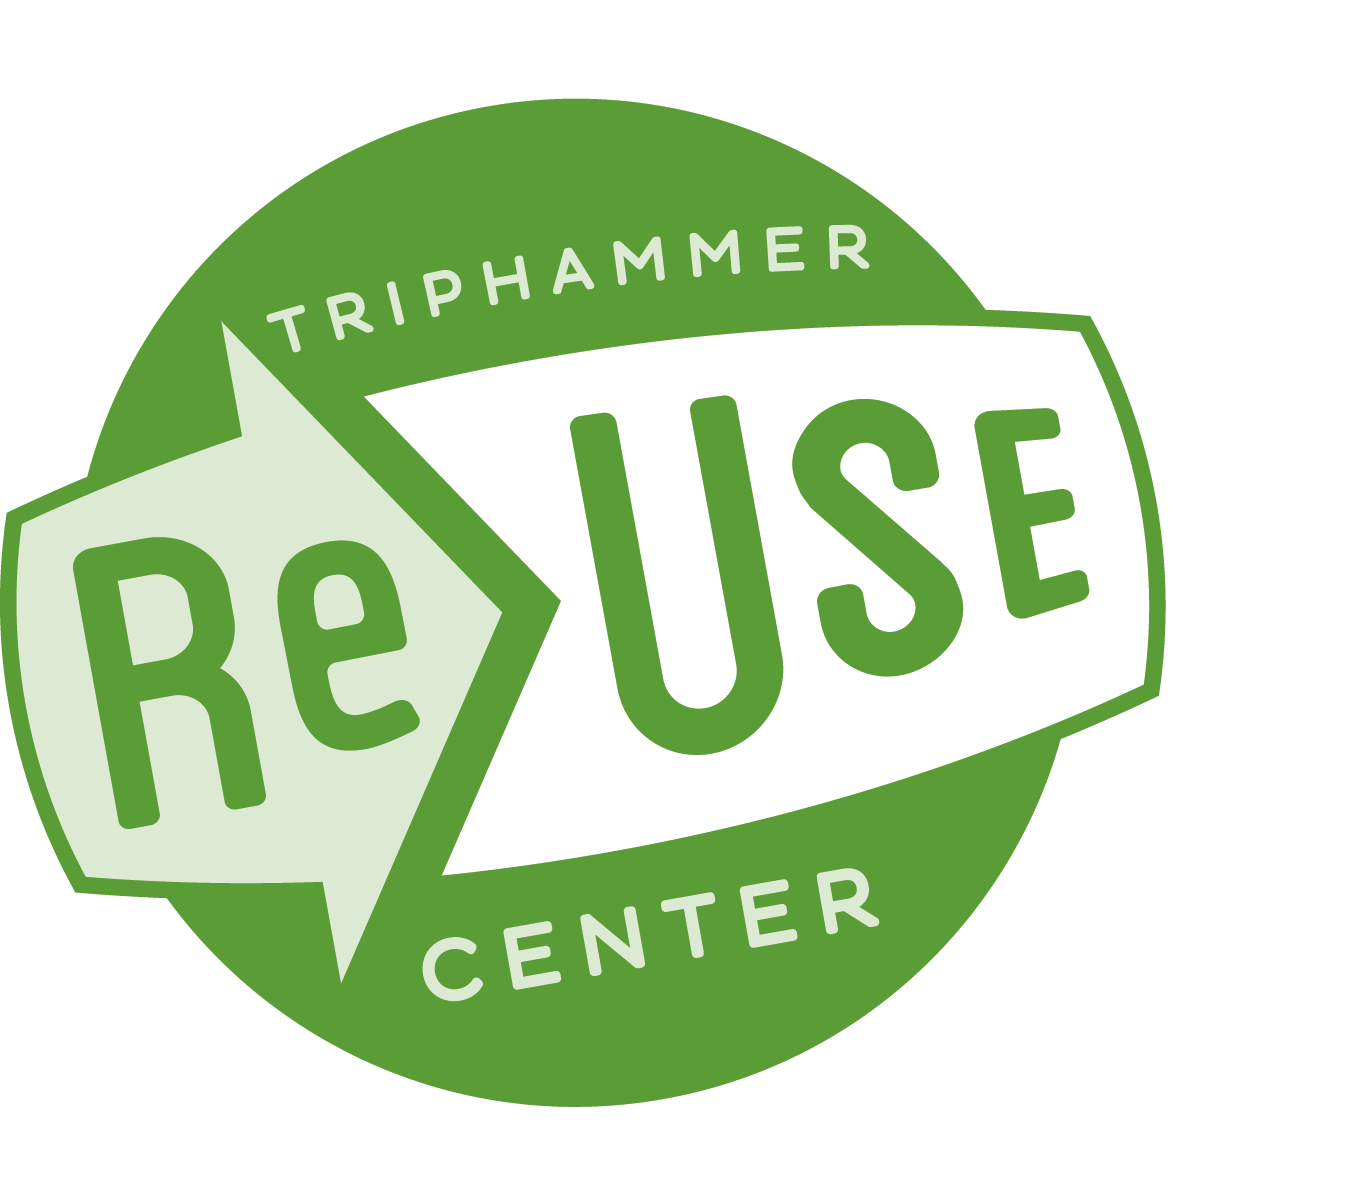 Triphammer ReUse Center Logo/Photo